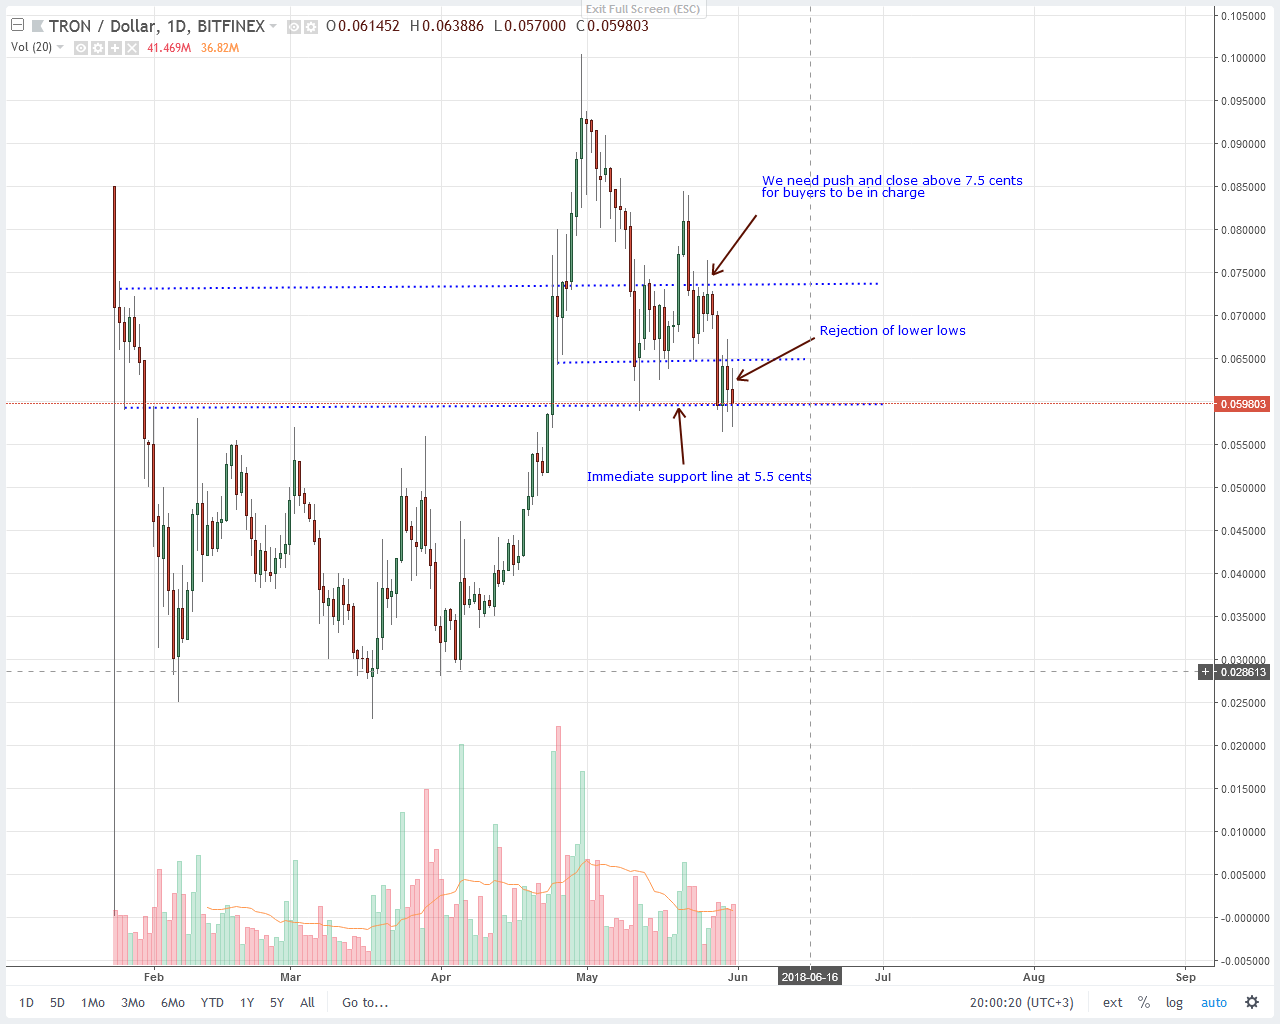 Tron (TRX) Price Technical Analysis